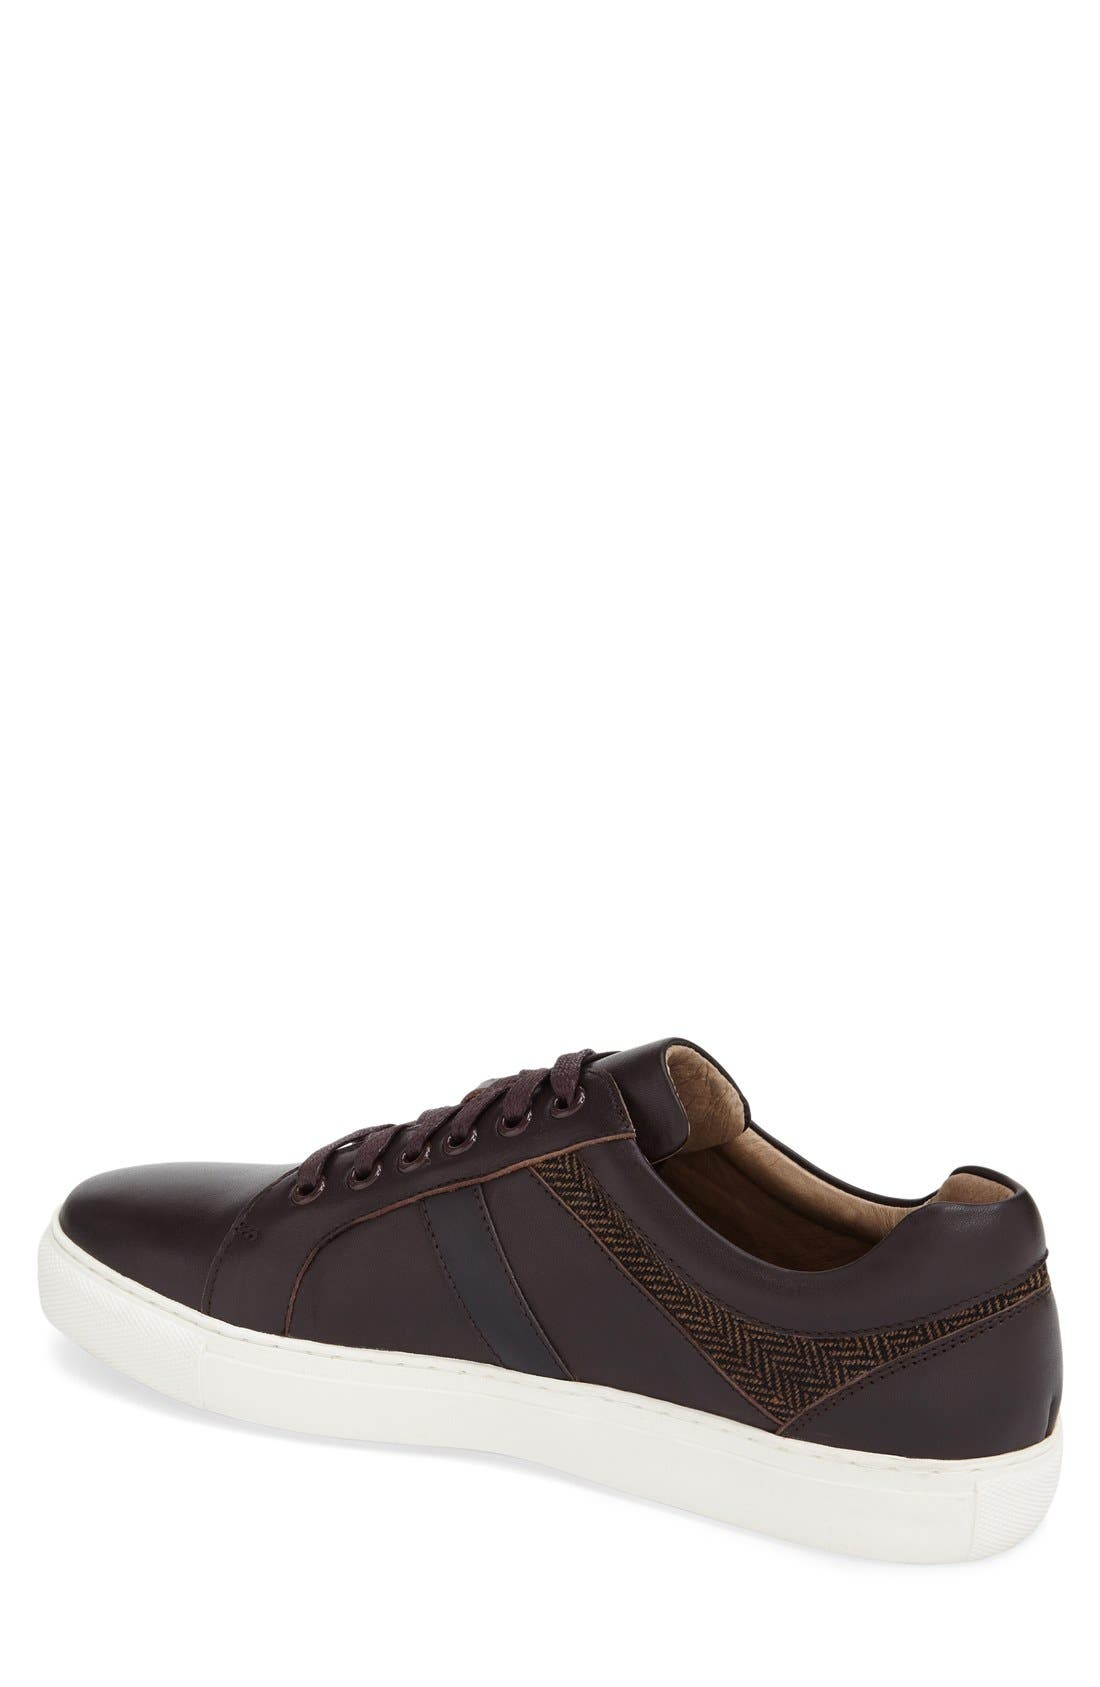 'Mixer' Sneaker,                             Alternate thumbnail 2, color,                             Brown Leather